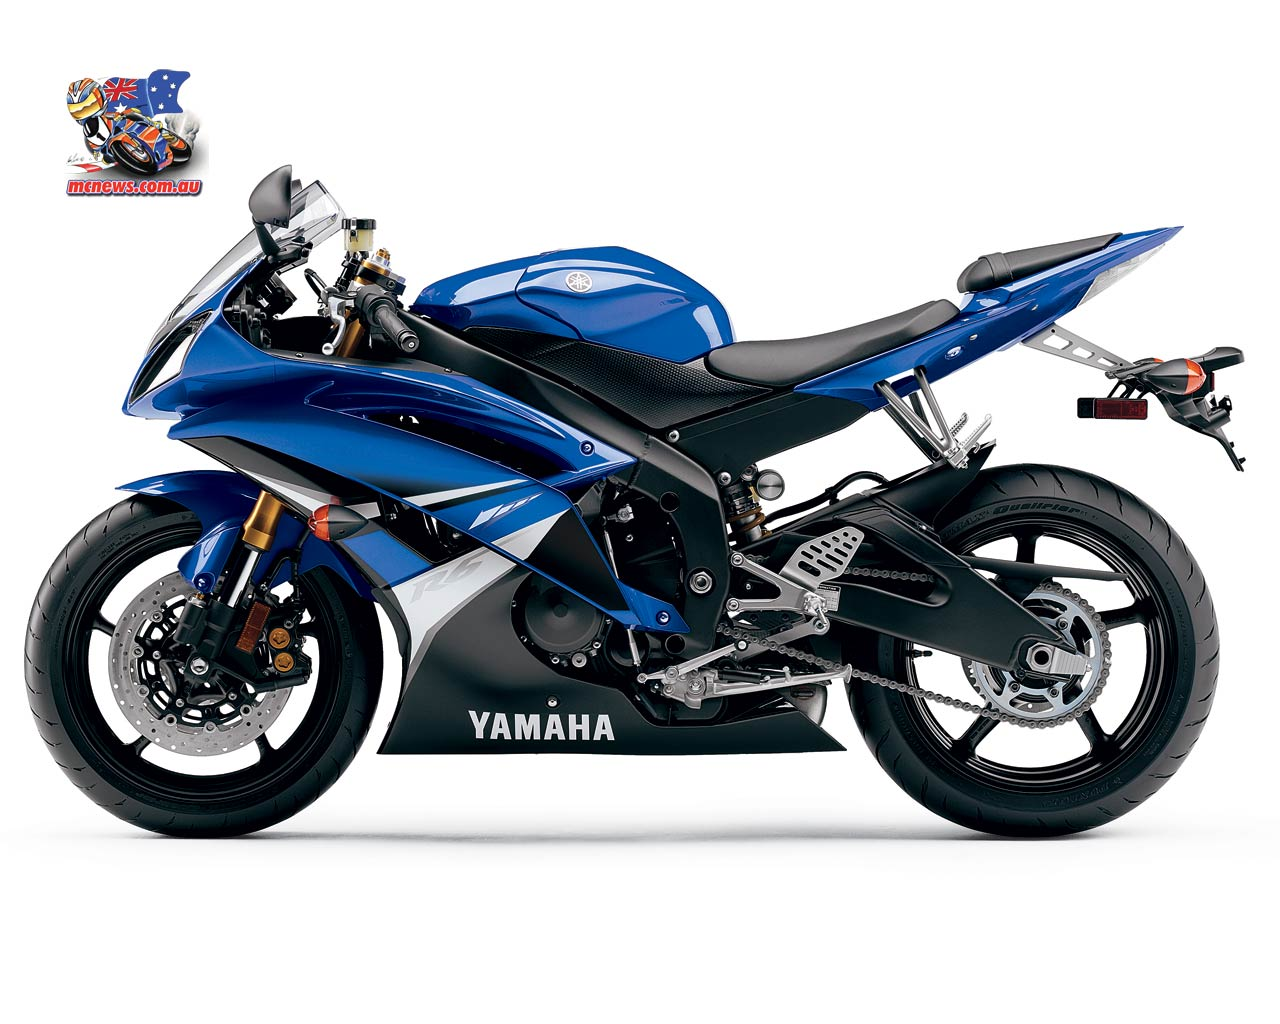 Yamaha R6 Wallpaper 19311 Hd Wallpapers in Bikes   Imagescicom 1280x1024